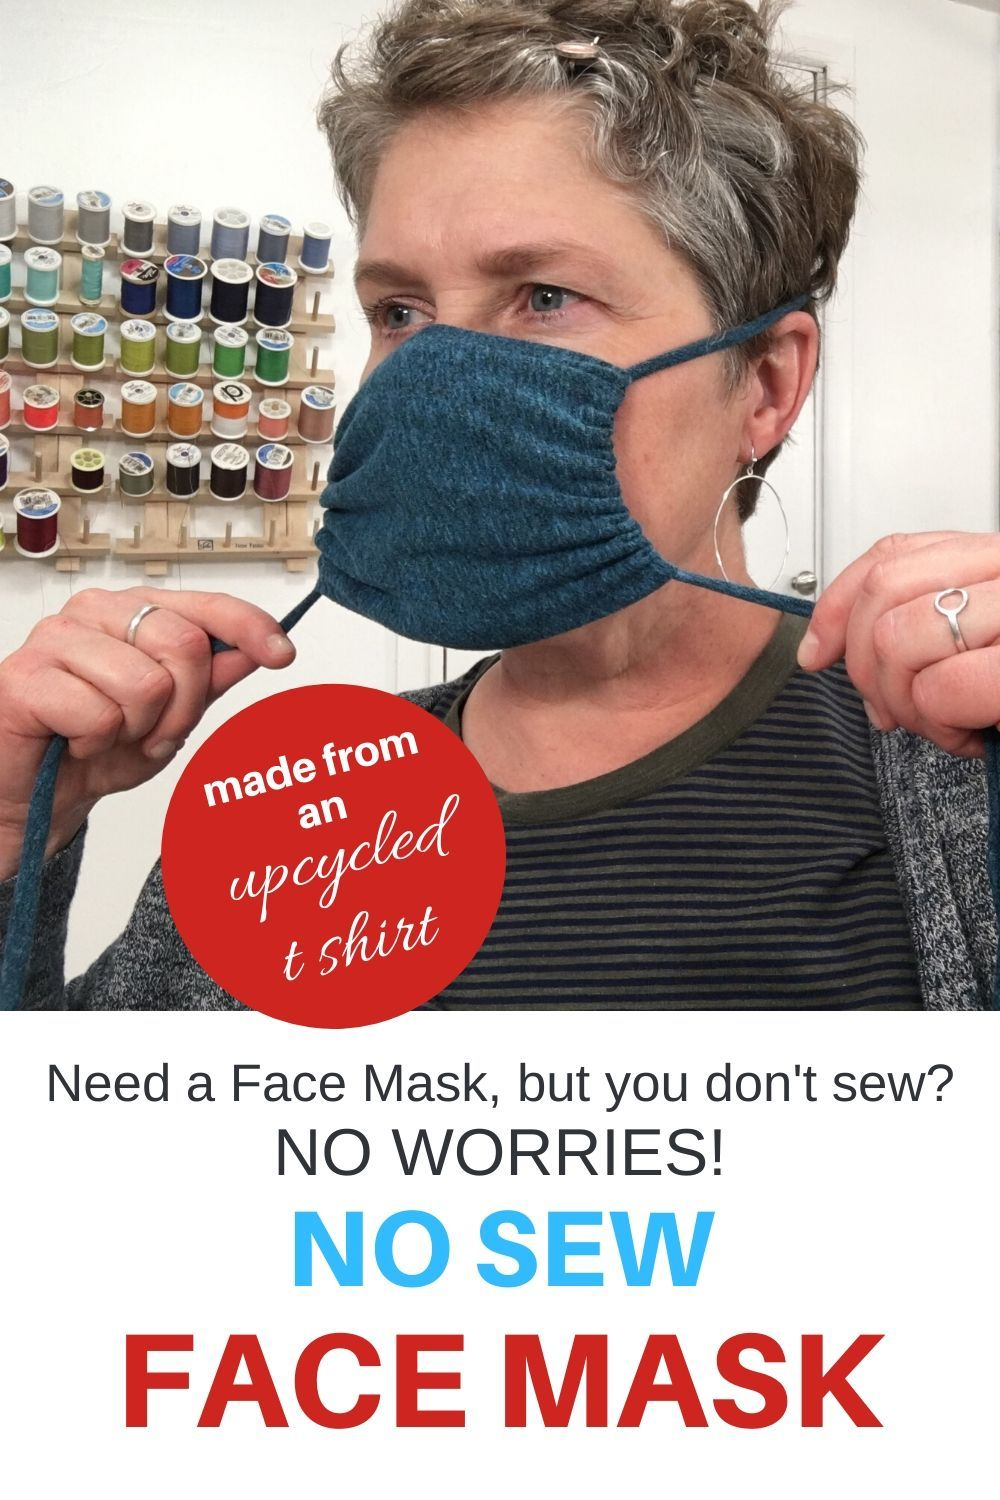 diy NO SEW Face Mask - Upcycled T Shirt - 5 Minutes - You Make it Simple